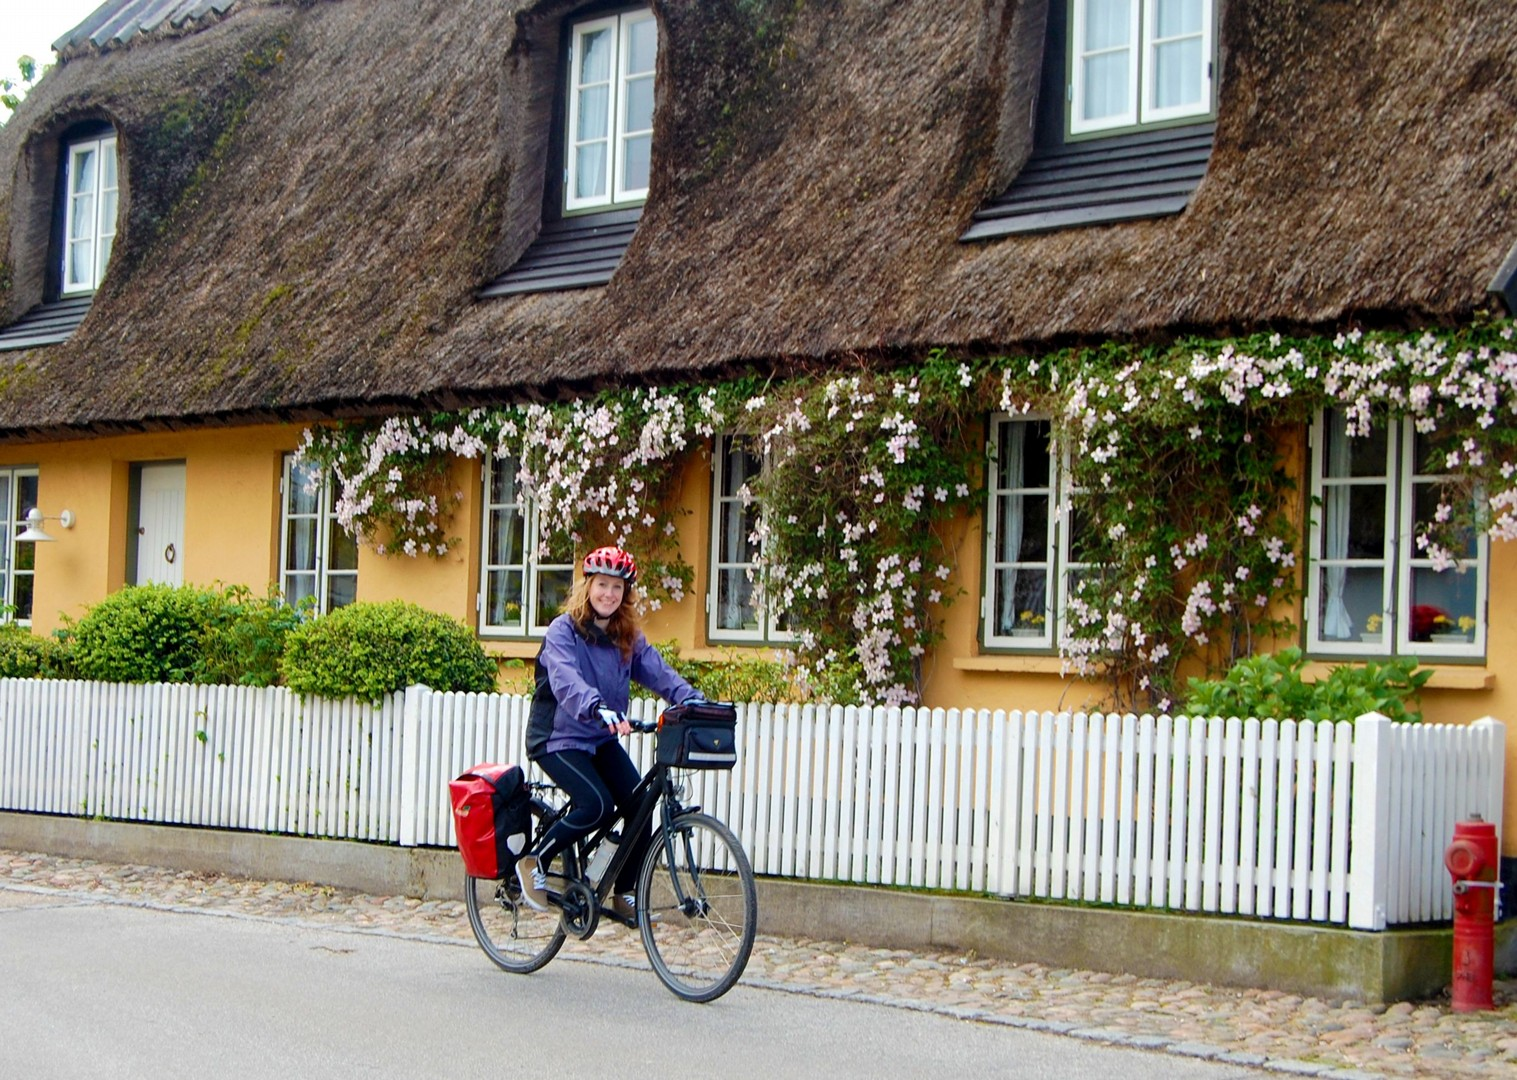 traditional-danish-houses-denmark-family-holiday.jpg - Denmark - Zooming Through Zealand - Self-Guided Family Cycling Holiday - Family Cycling